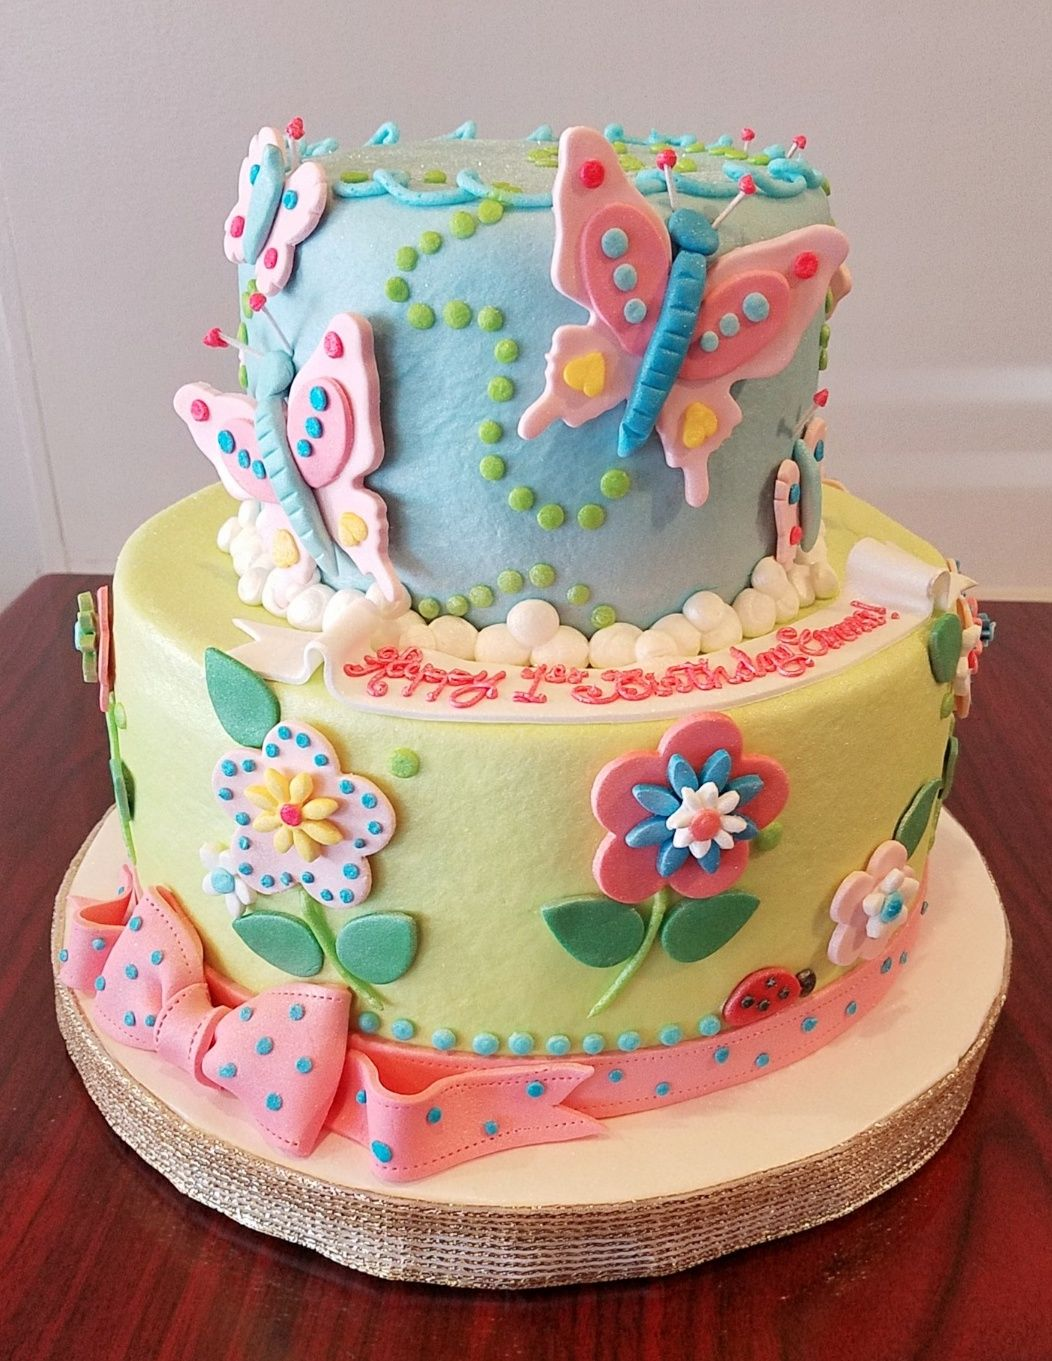 Spring Butterflies and Flowers Cake Adrienne & Co